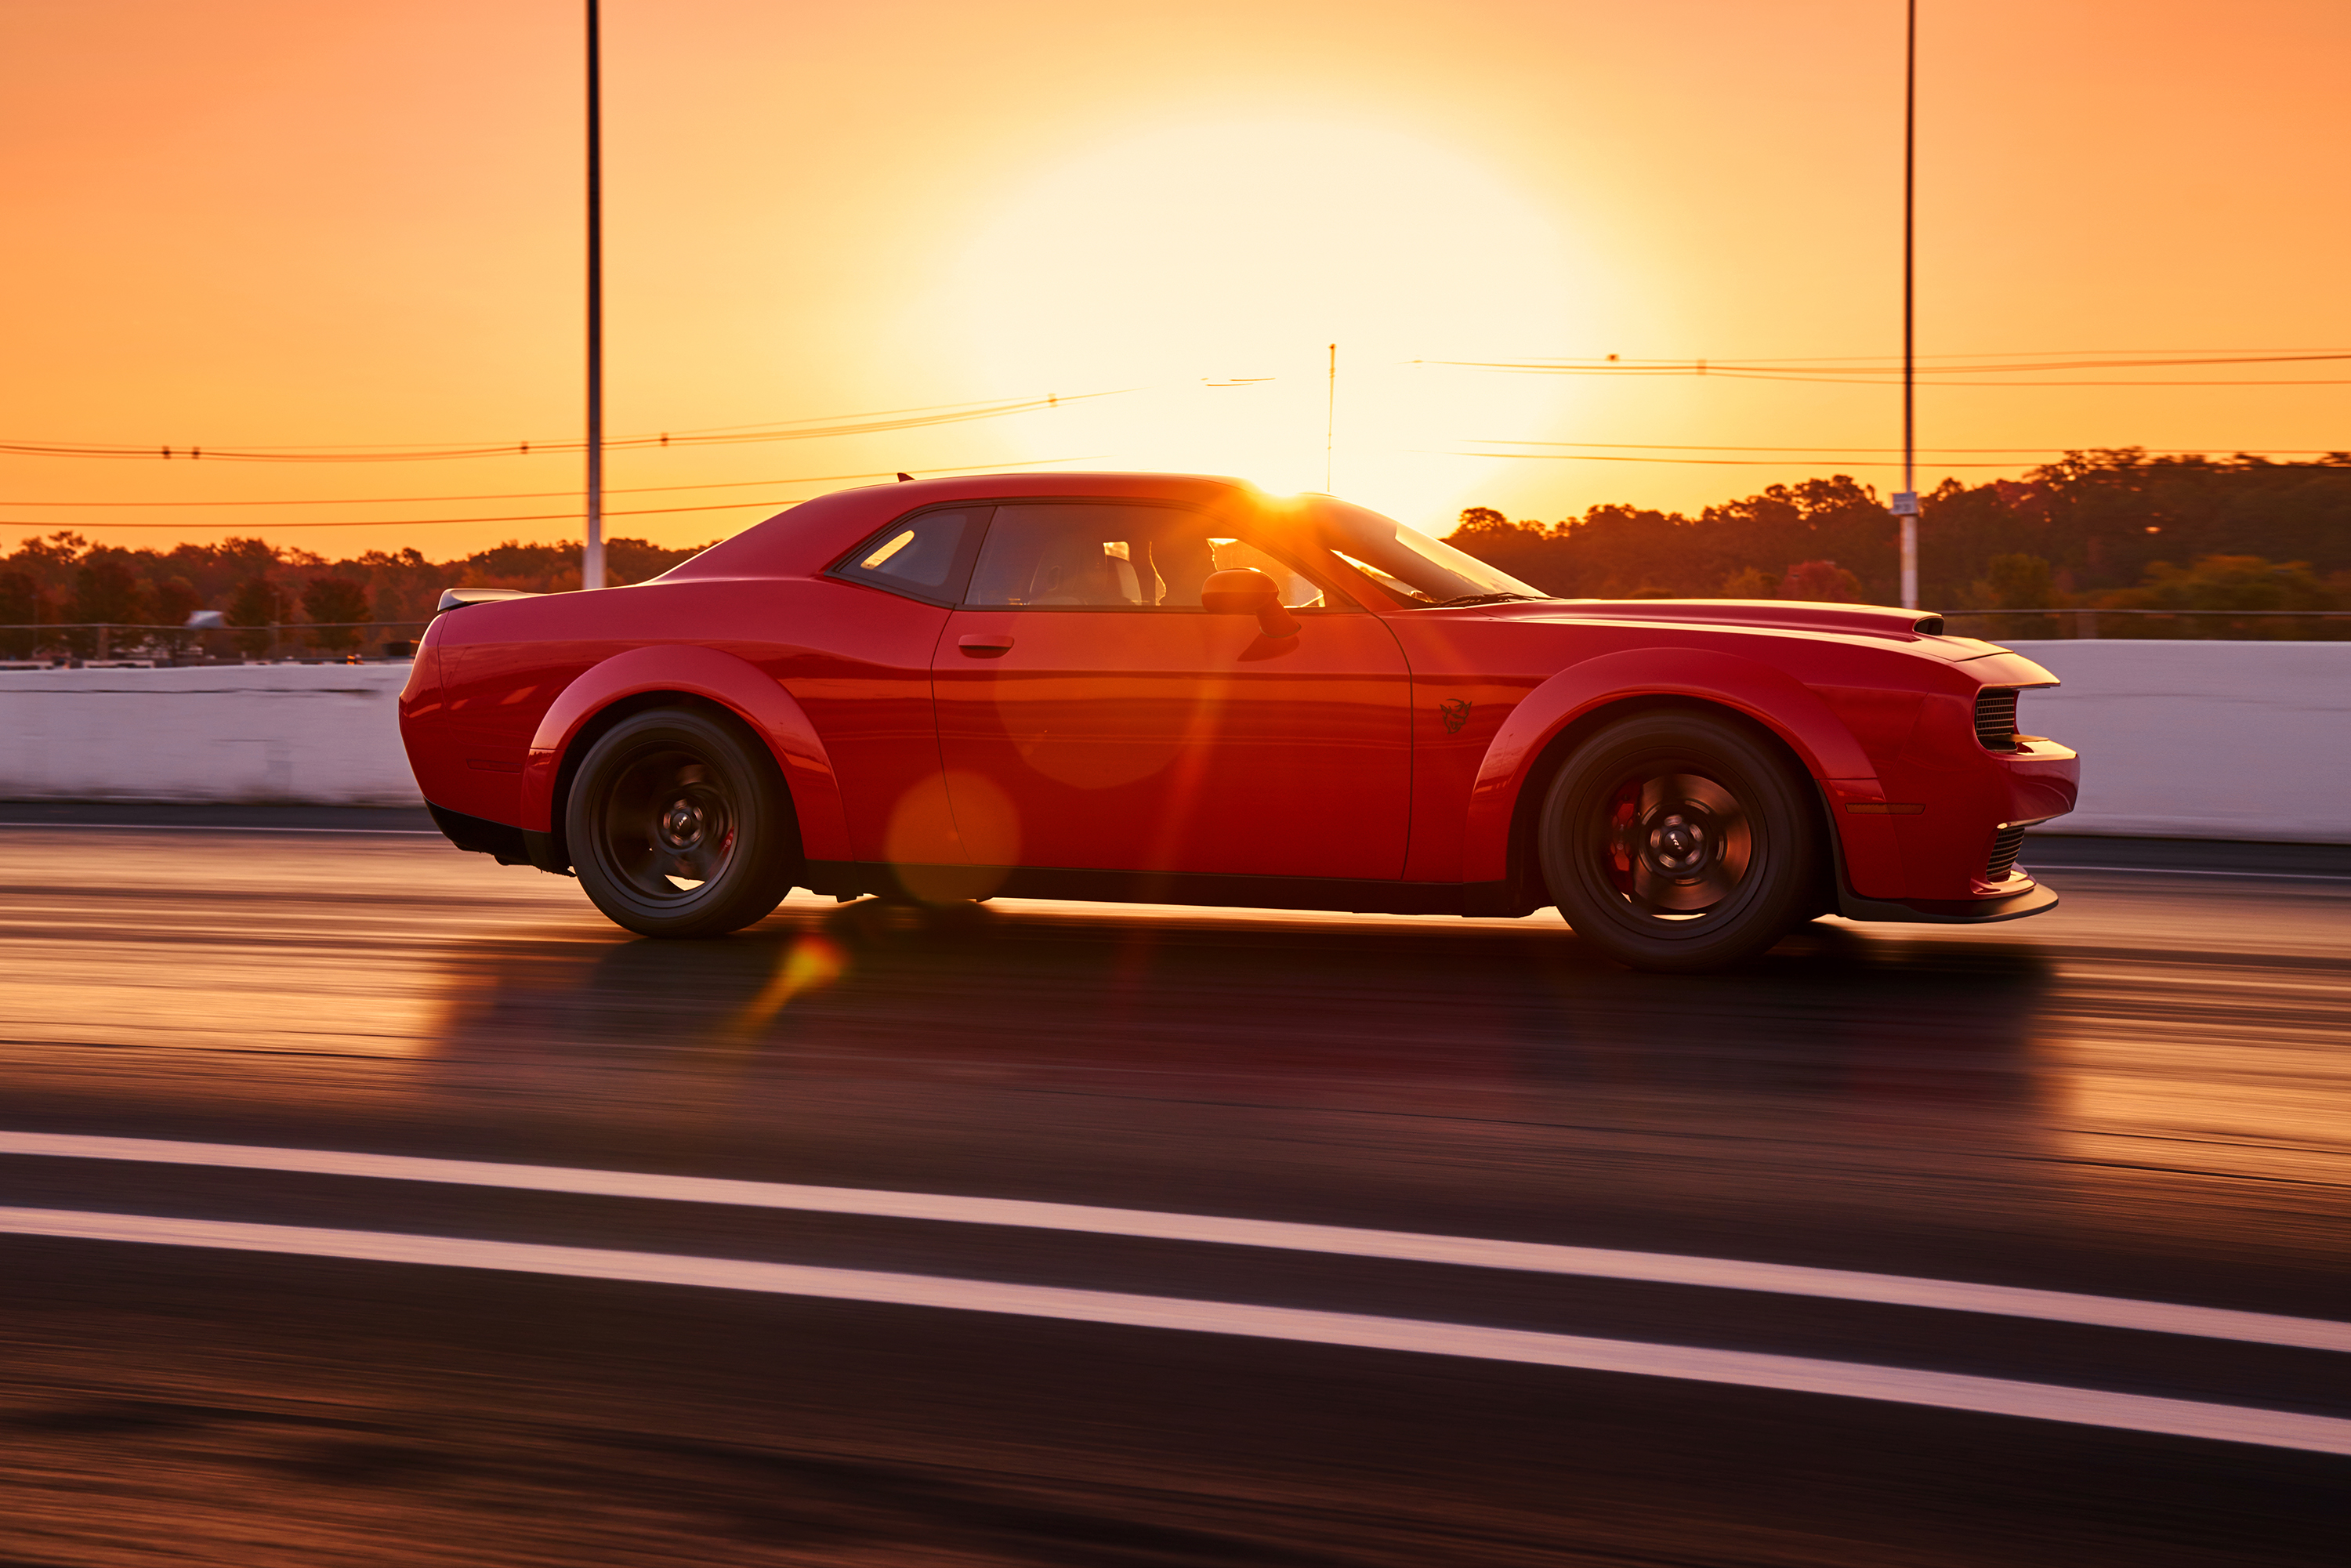 2018 Dodge Challenger SRT Demon at sunset